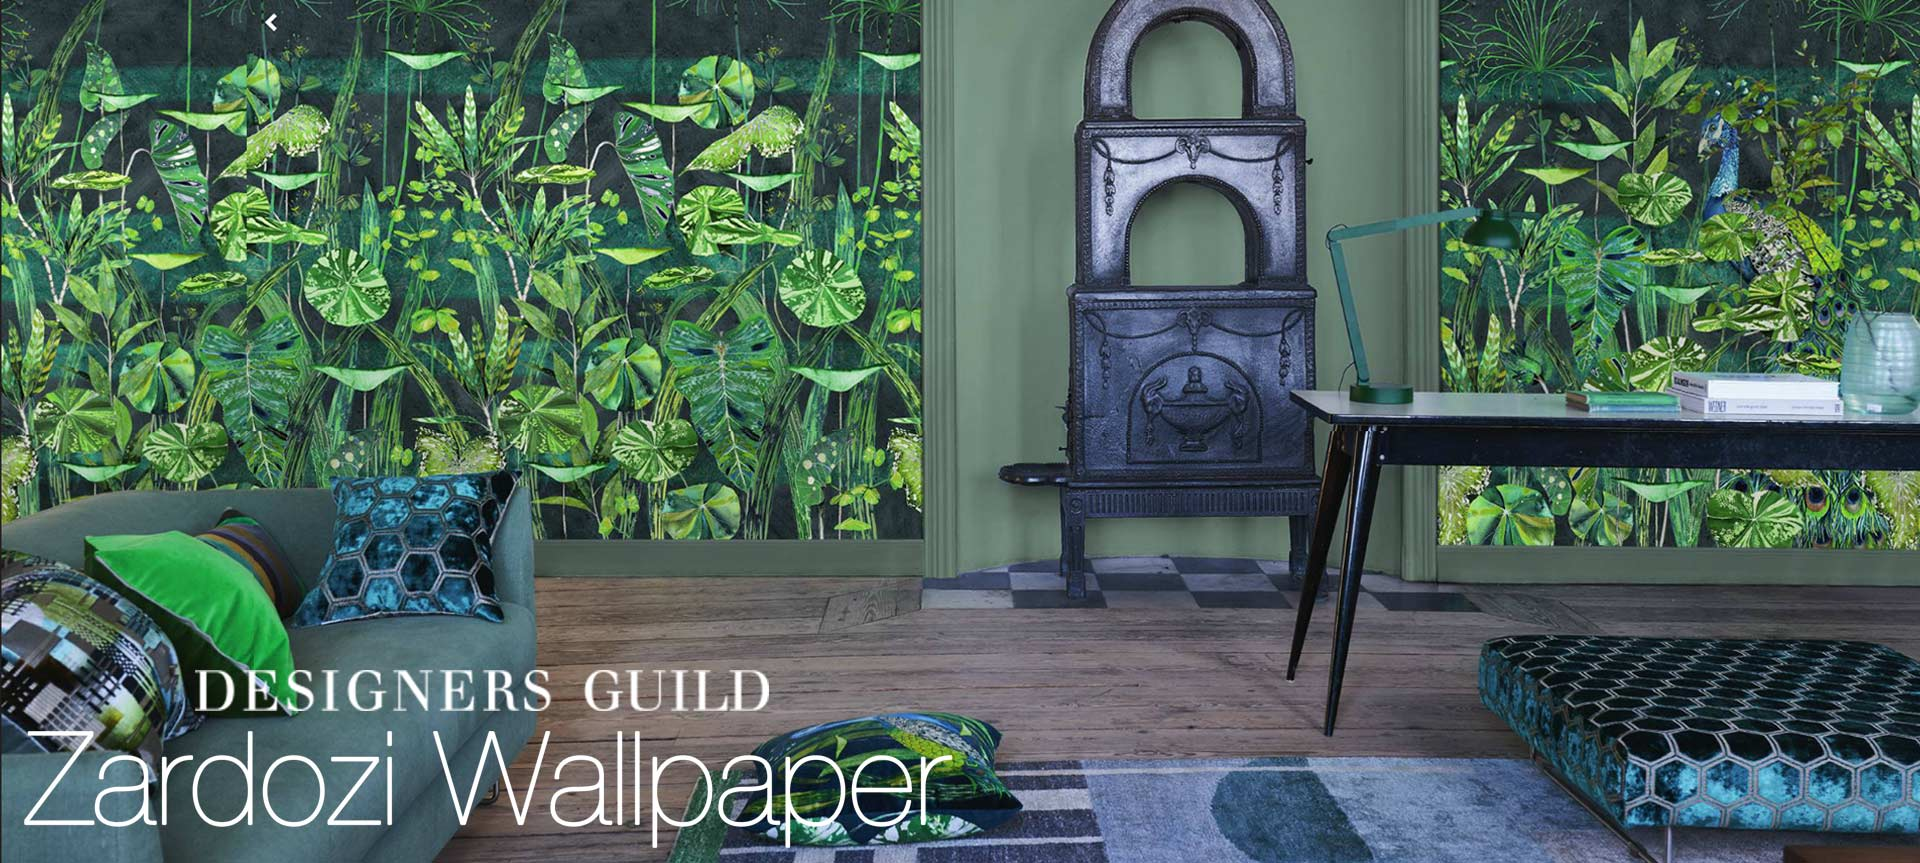 designers guild zardozi wallpaper collection